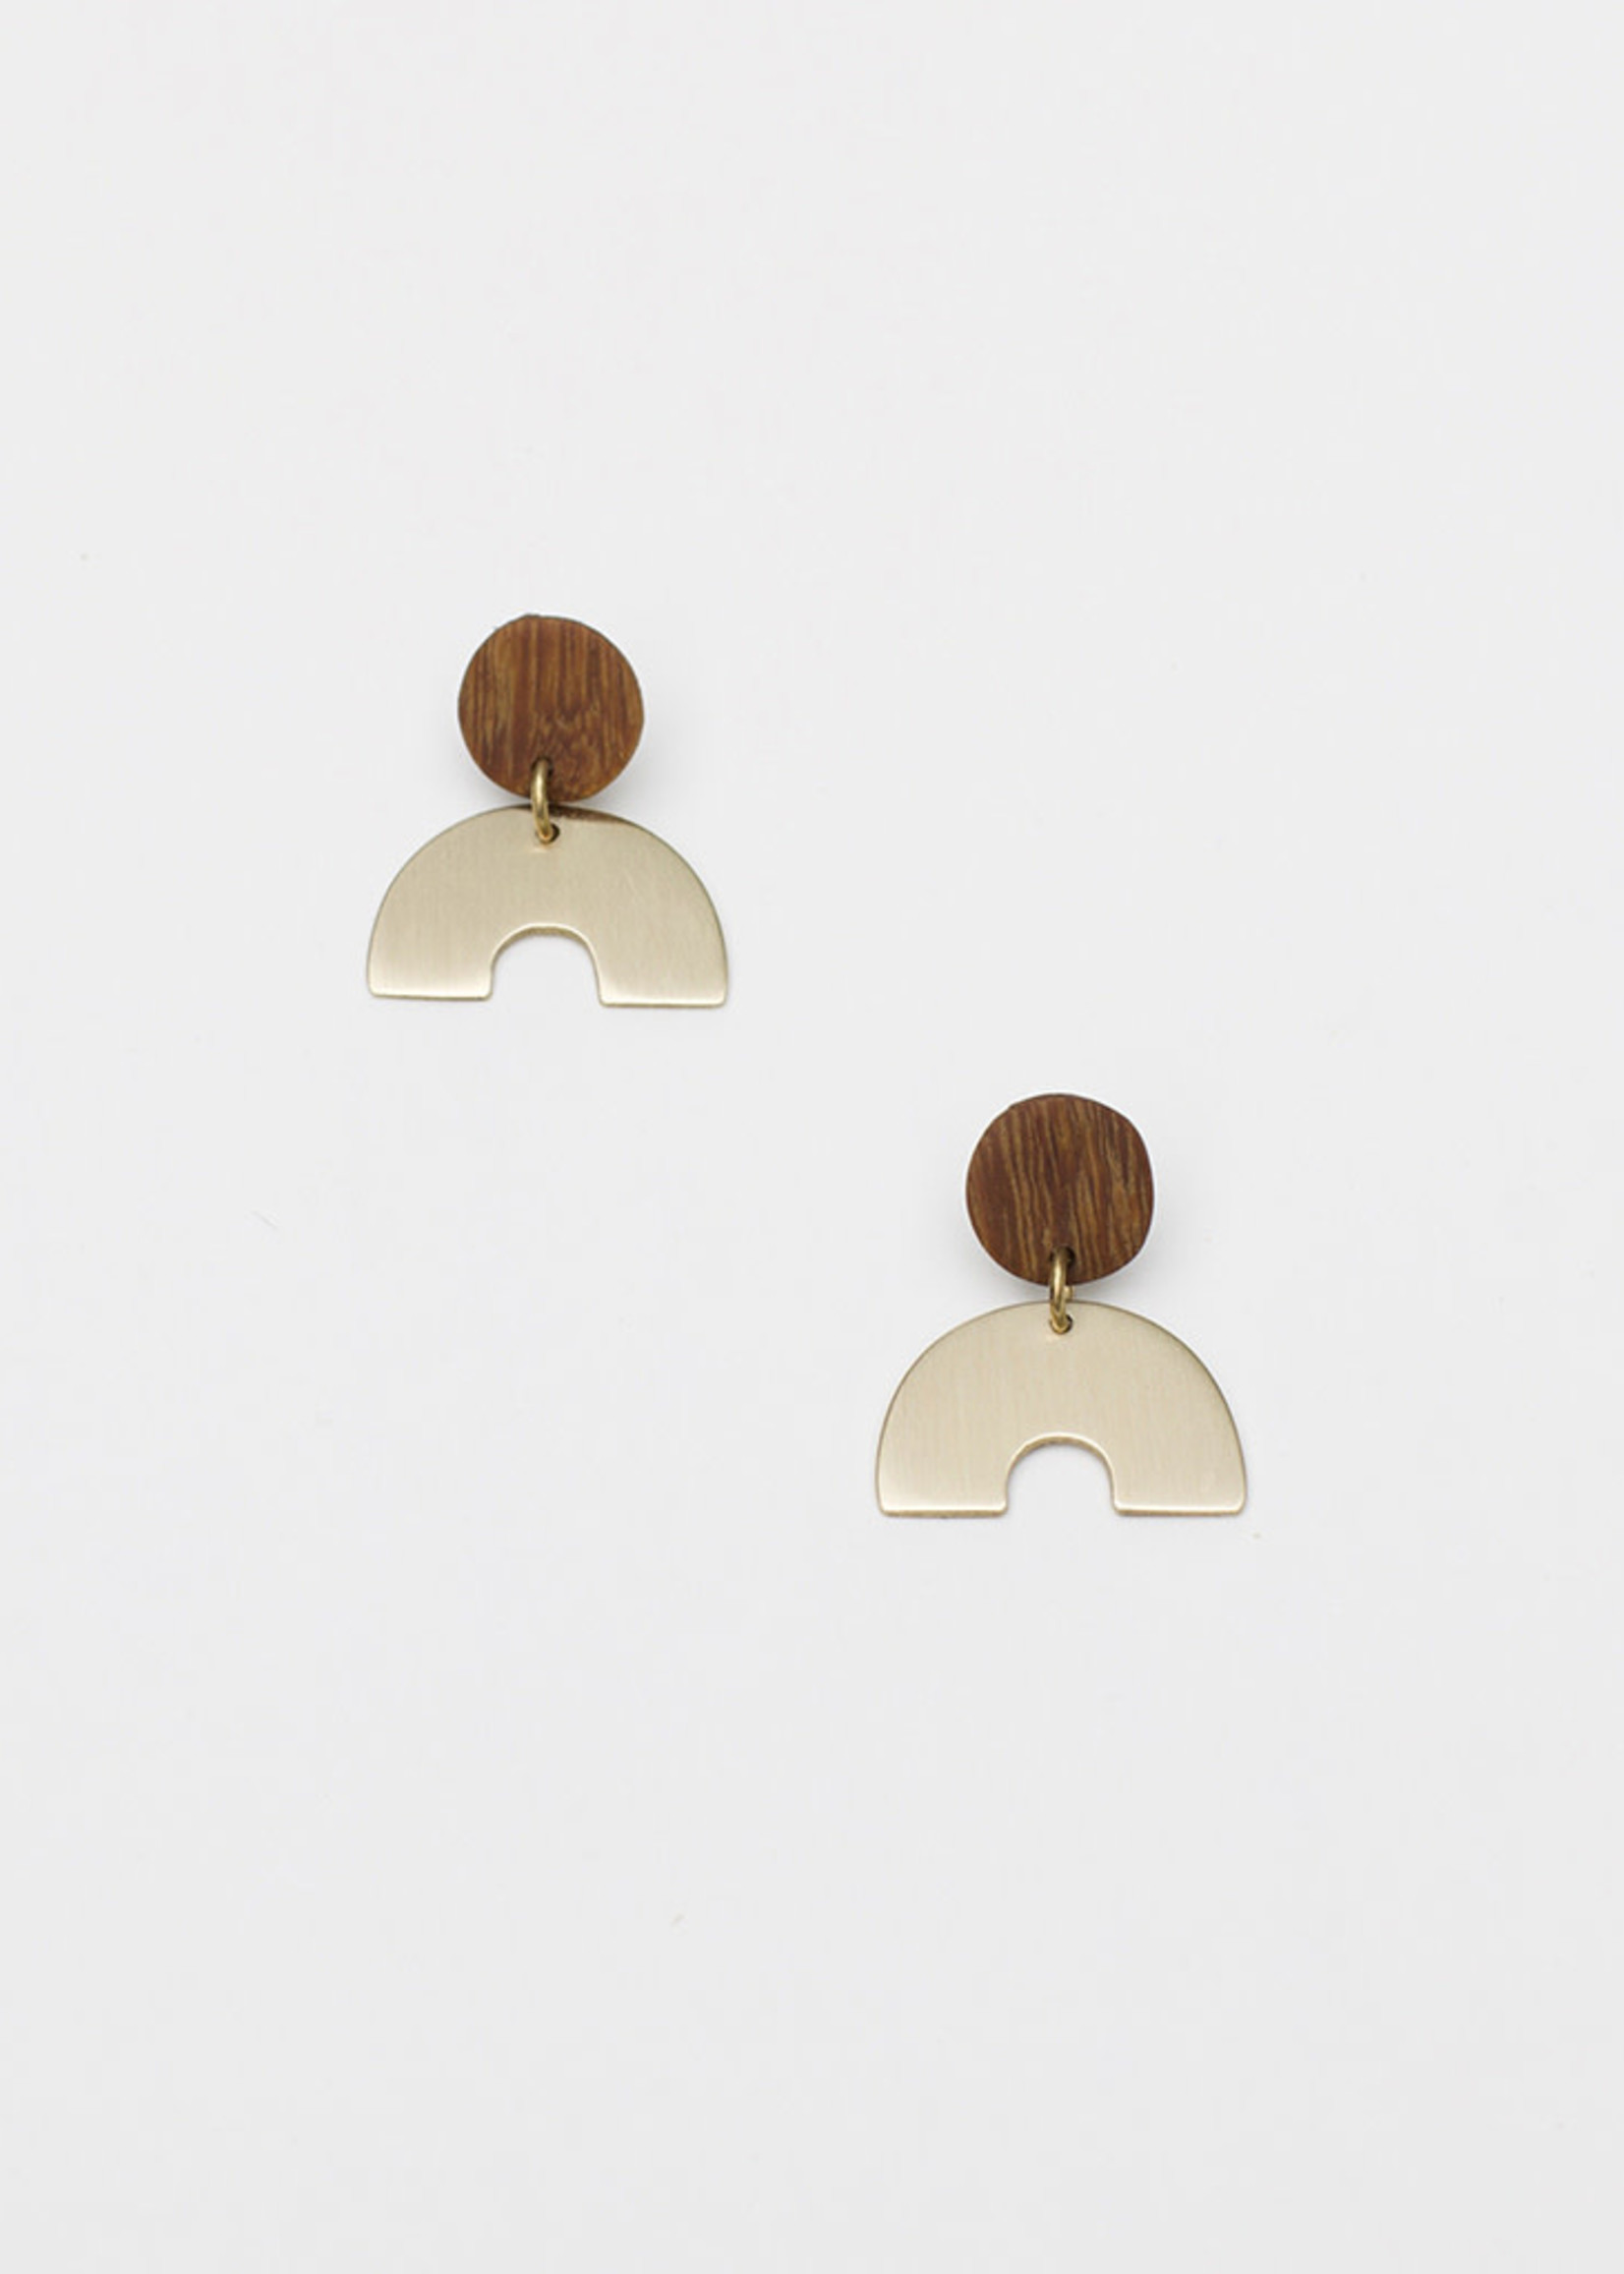 YEWO Dambo Earrings